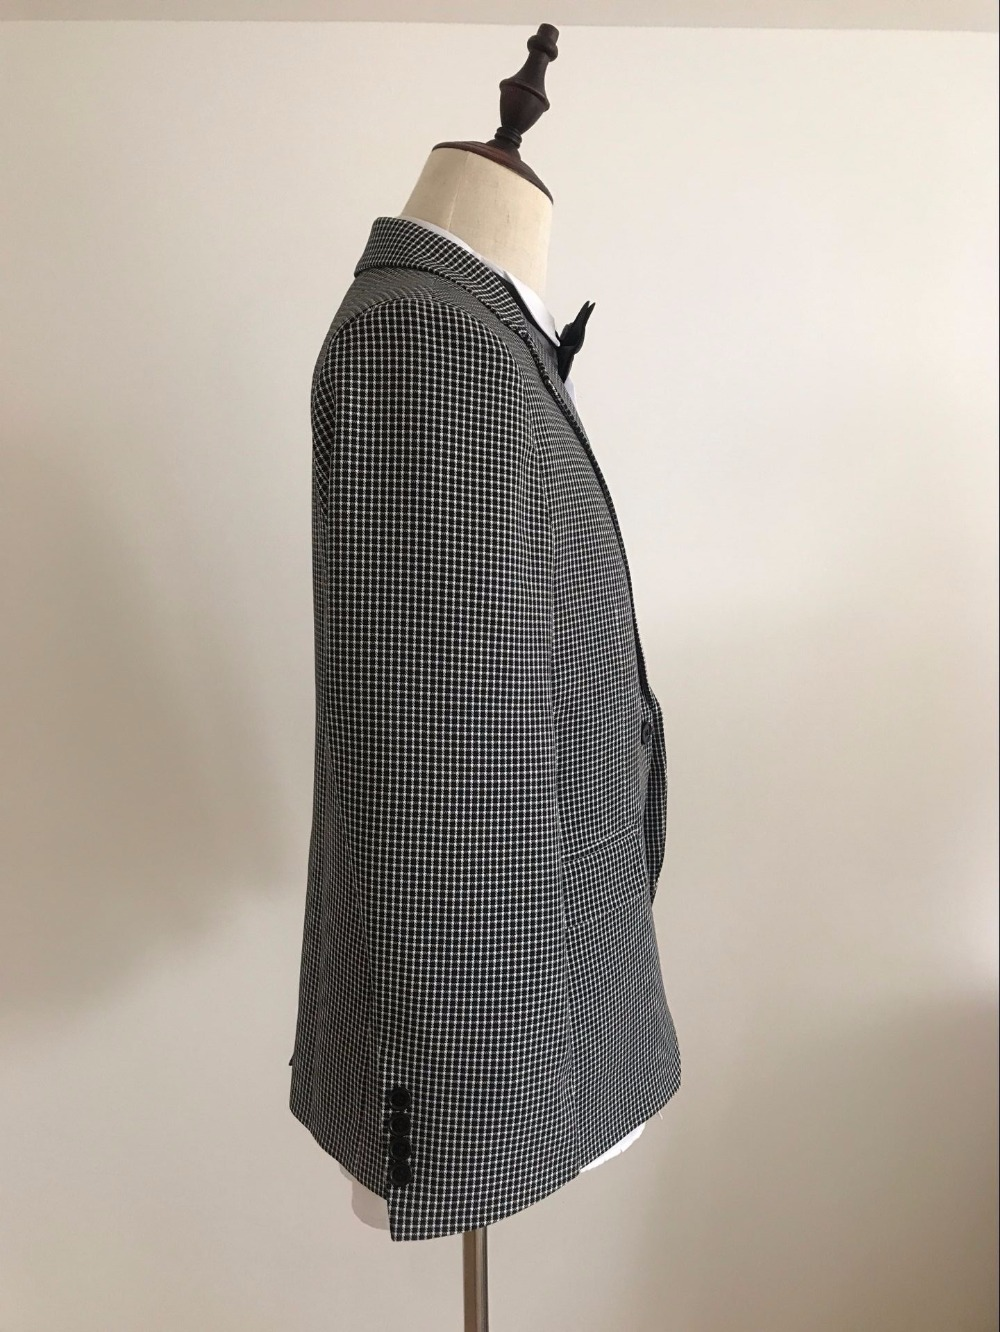 Hommes Sur veste Image Meilleur Made Costume Pièces Hankerchief 2 Garçons Cravate Pantalon custom Mariage Homme The Smokings Mesure Marié Plaid D'honneur De As q8R5nA76